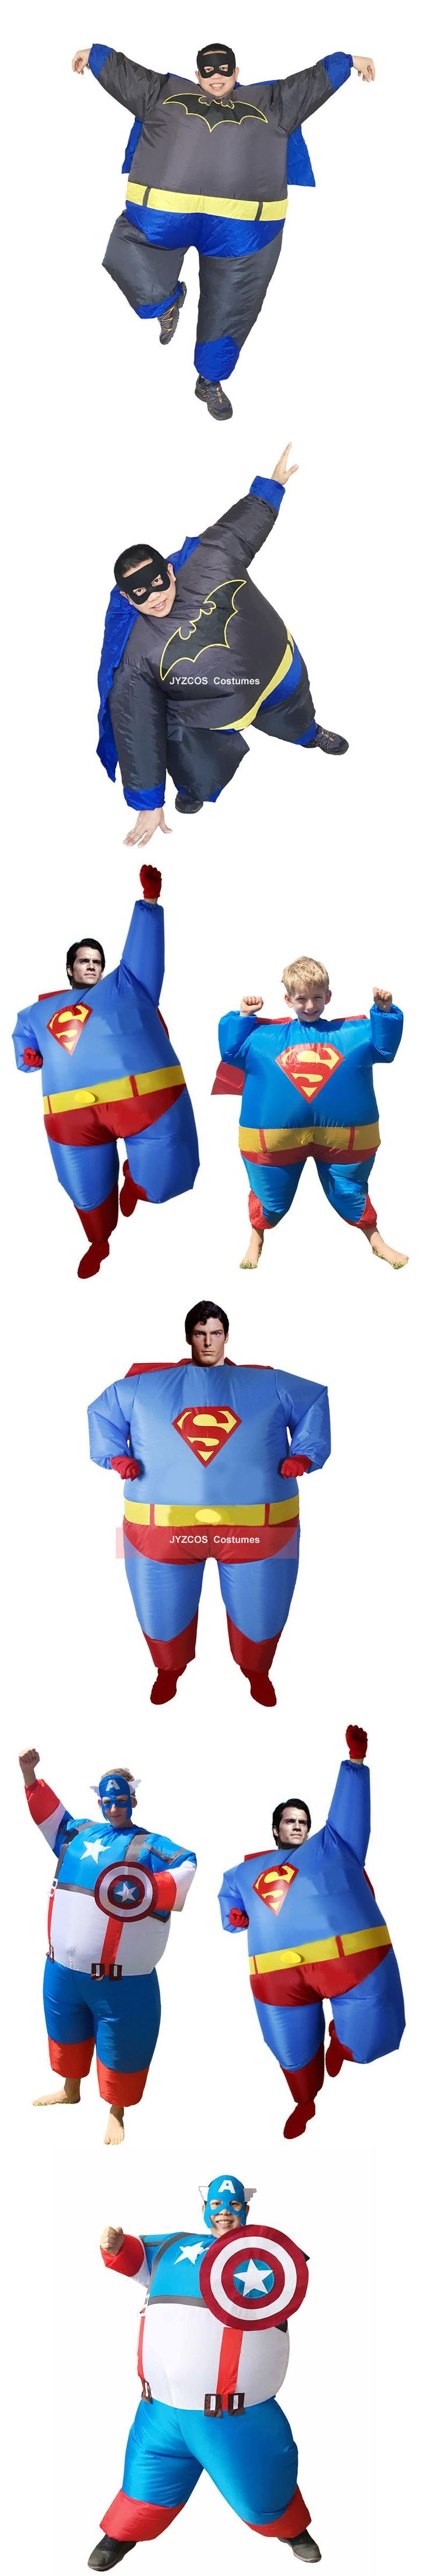 New Airblown Inflatable Fat Superman Costume Halloween Purim Party Fan Operated Superhero Funny Cosplay Fancy Dress Outfits